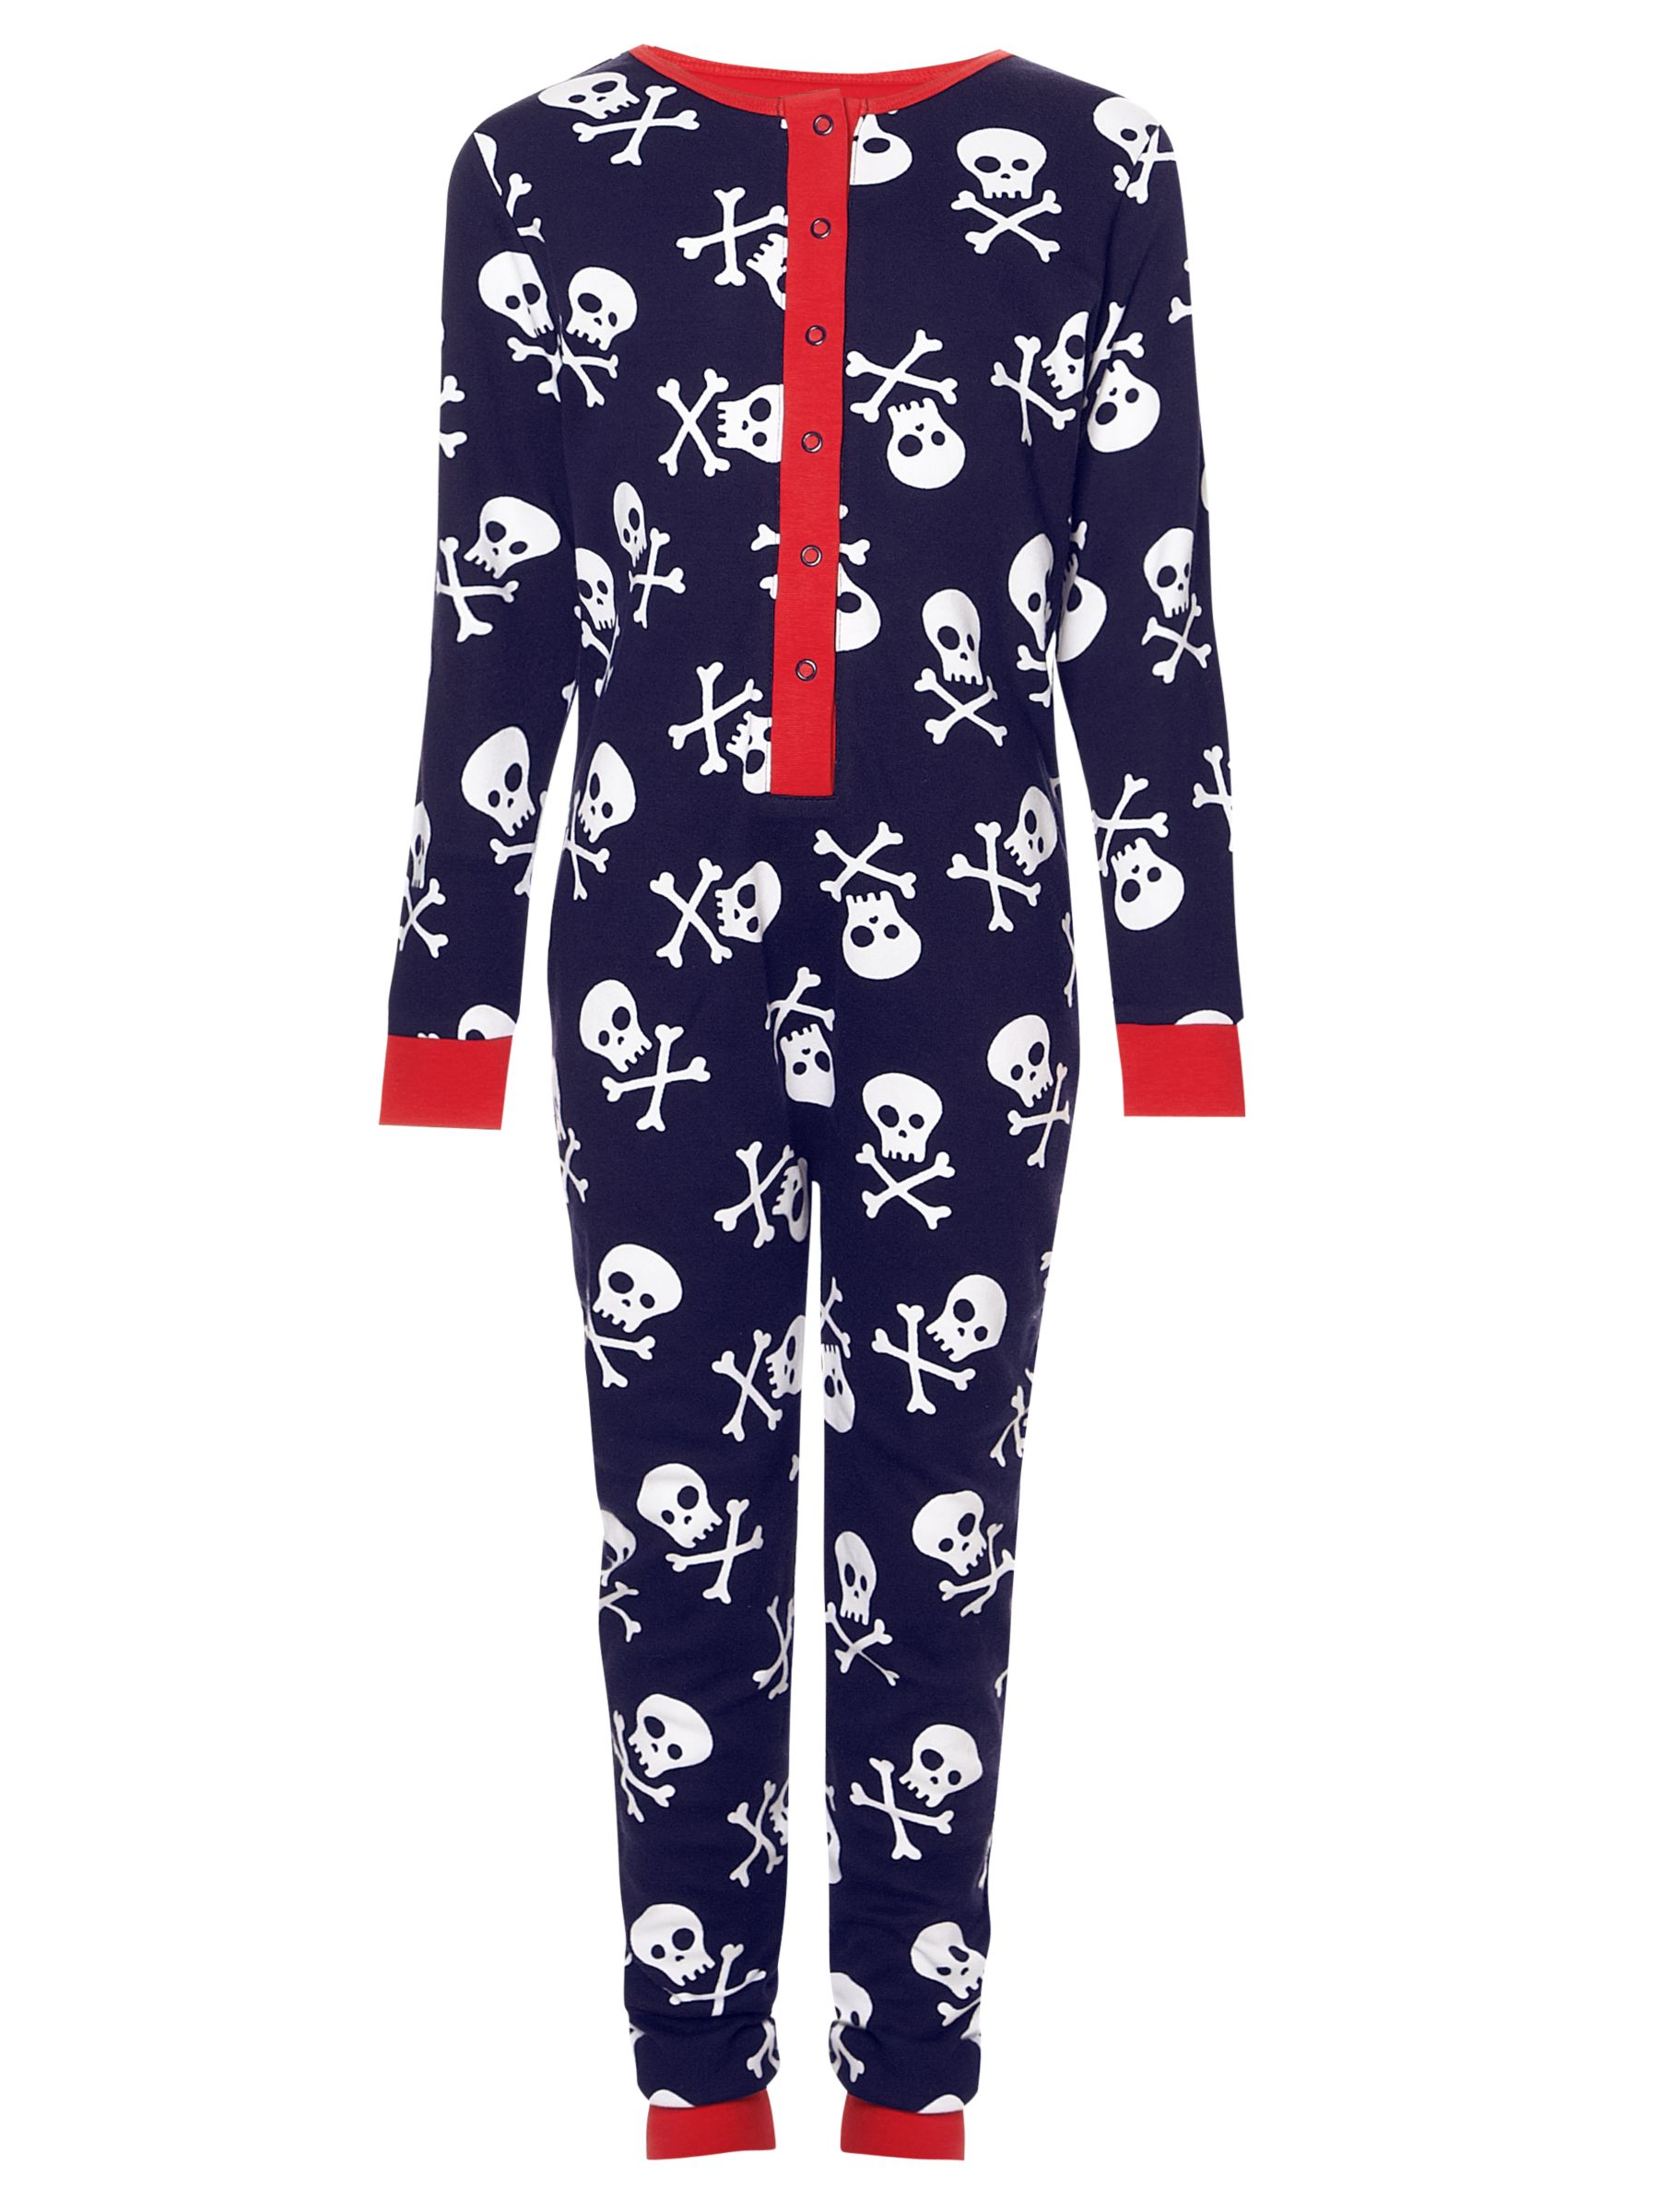 John Lewis Boy Skull and Crossbones Onesie, Navy/White